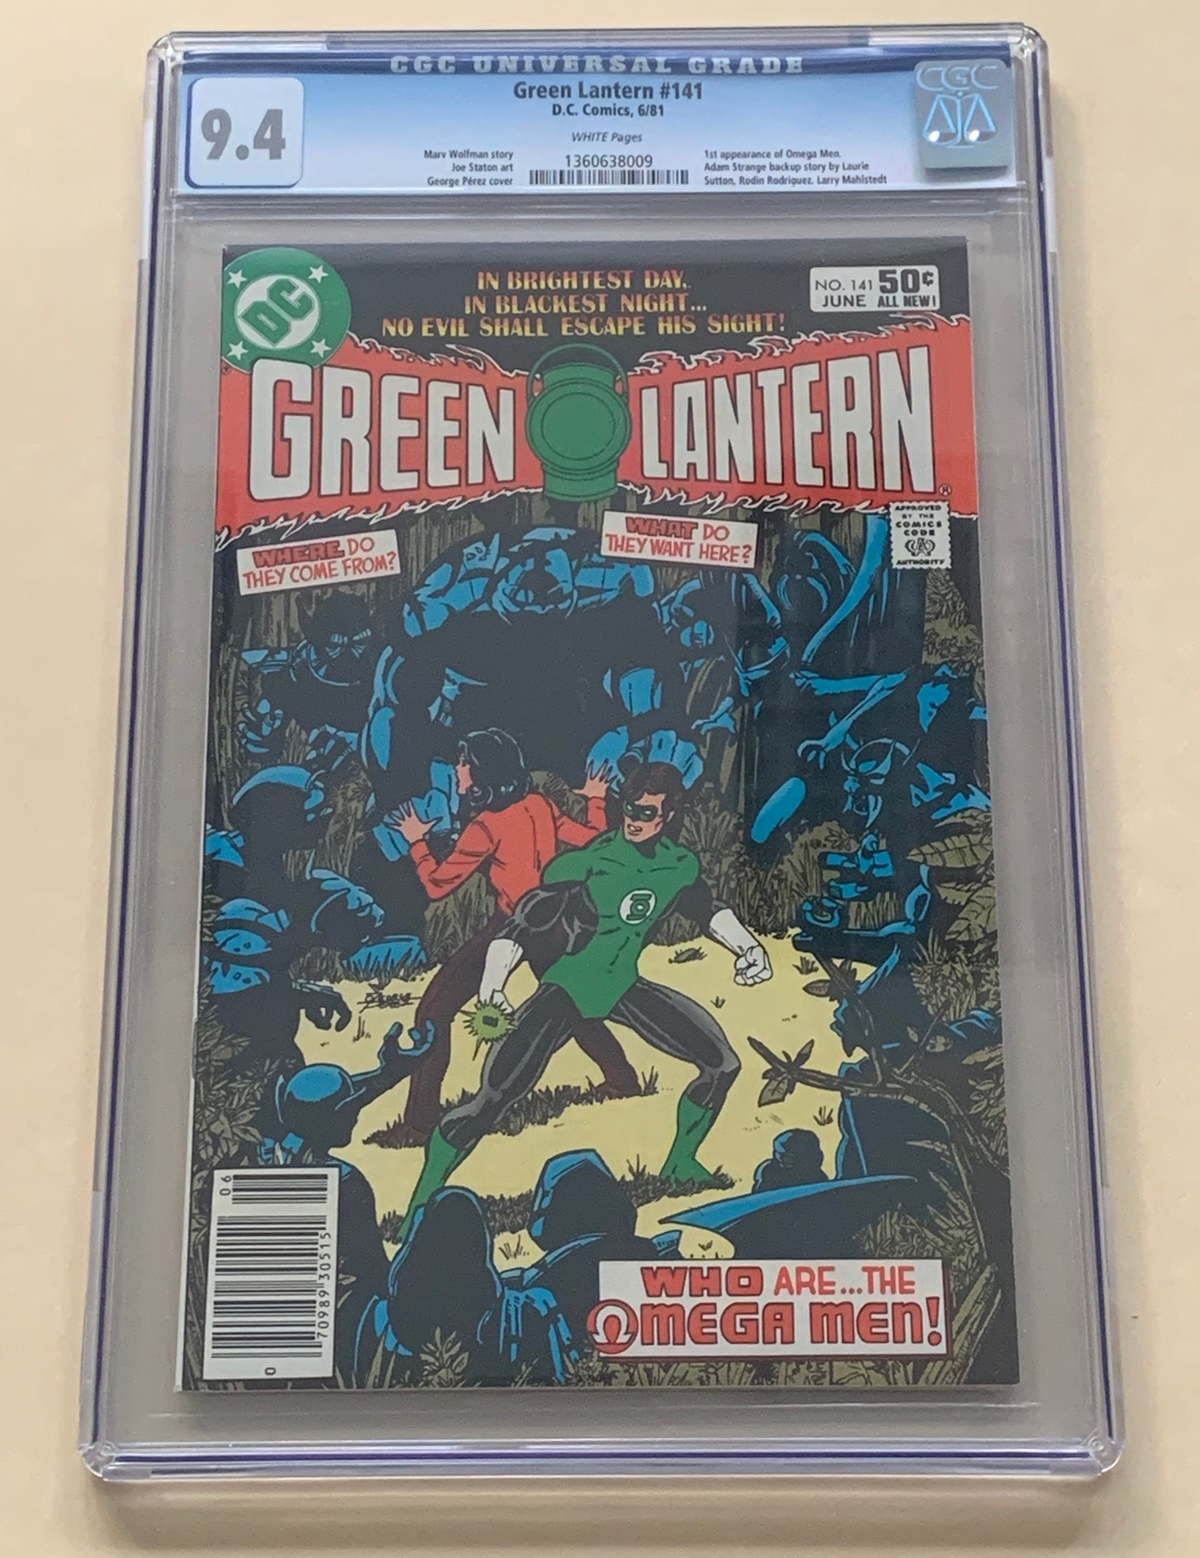 Lot 2096 - GREEN LANTERN #141 (1981 - DC) Graded CGC 9.4 (Cents Copy) - First appearance of the Omega Men -